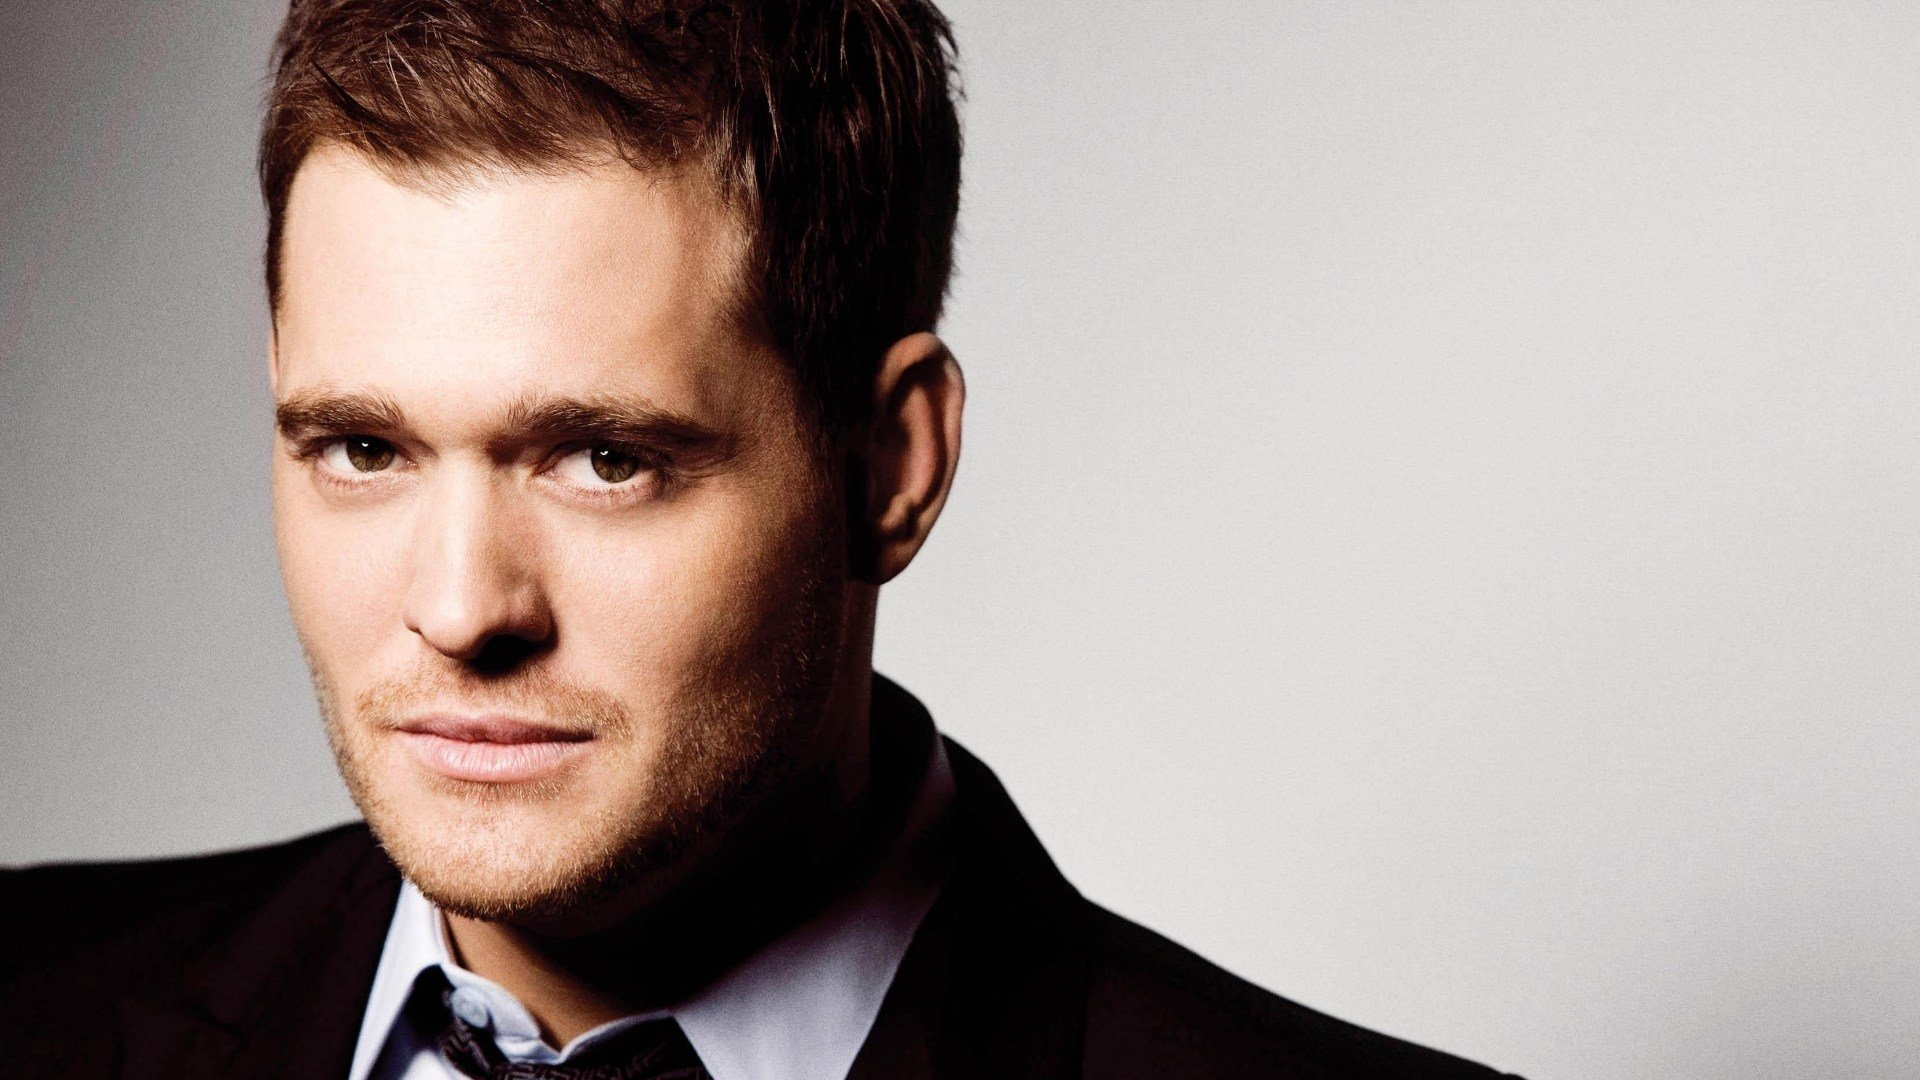 Michael Buble images MICHael bubLE wallpaper and background photos ...